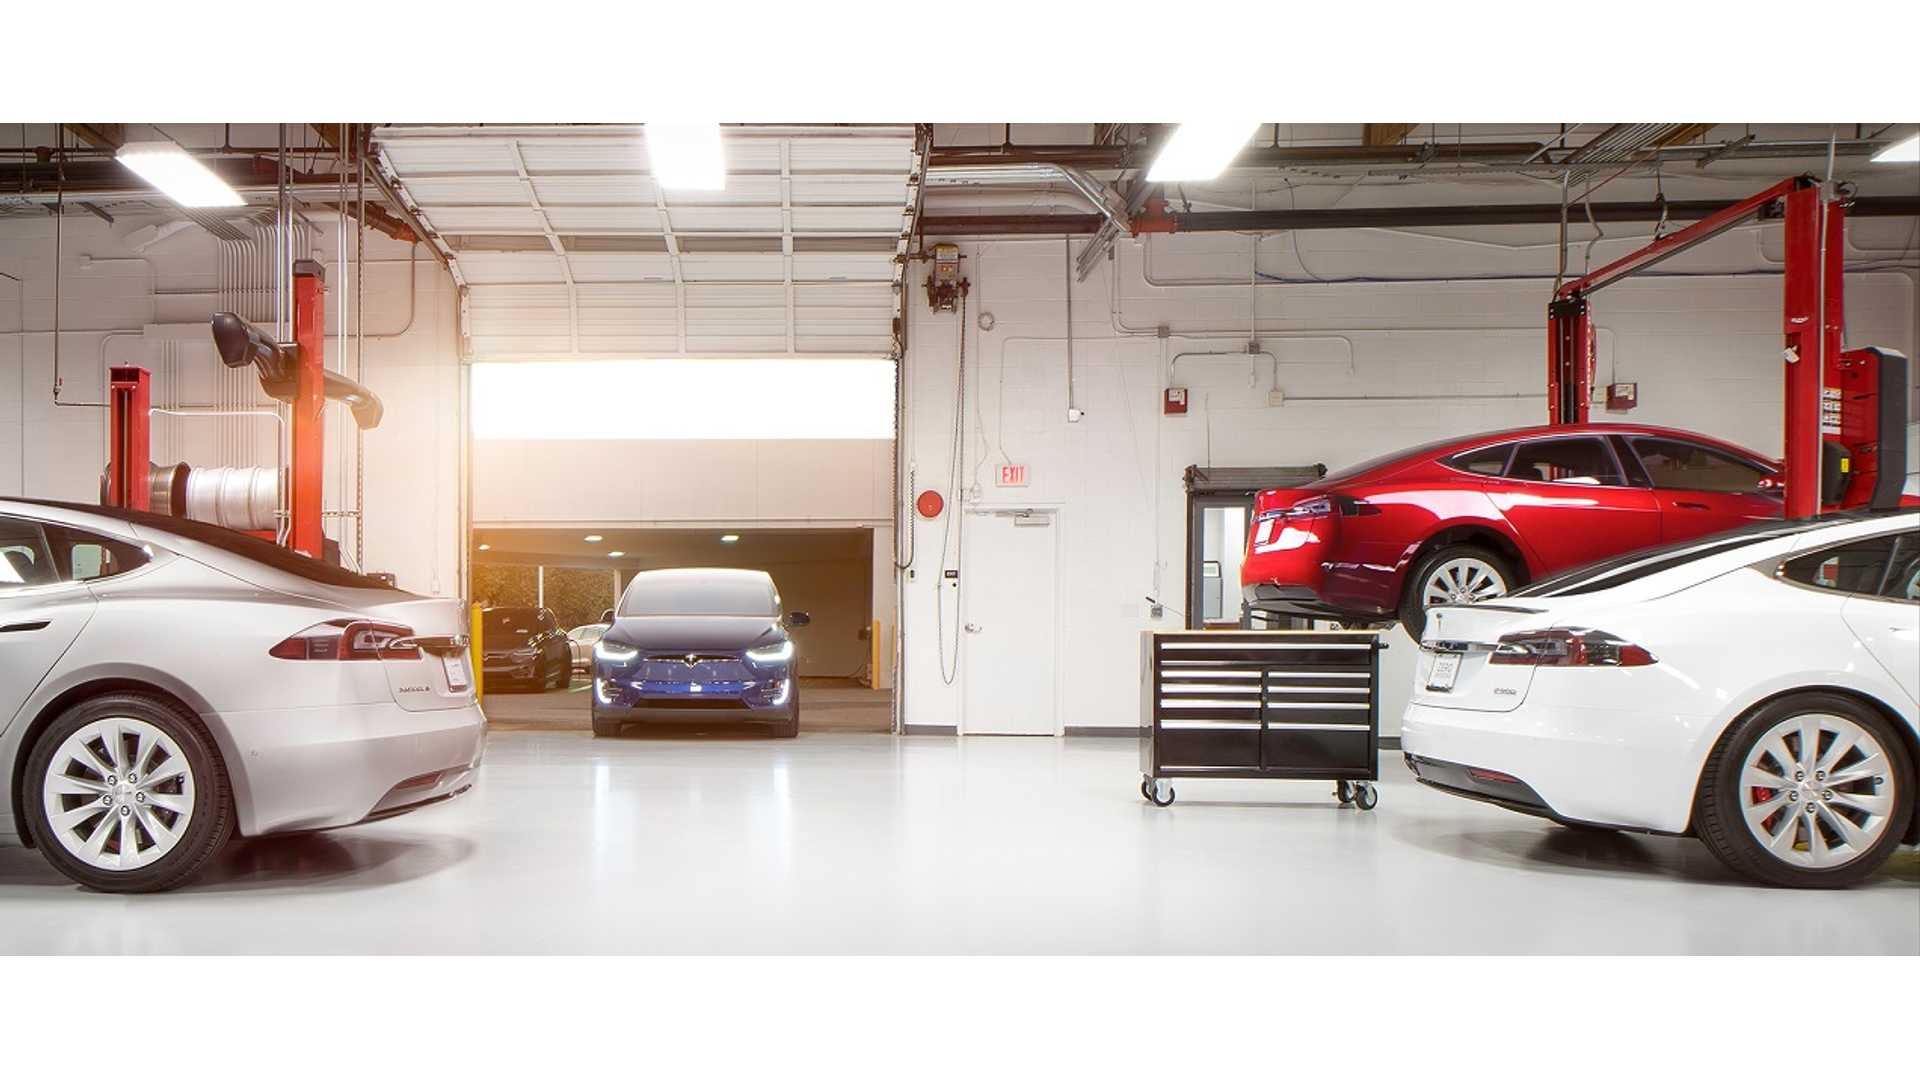 Teslanomics Explores Tesla Service Center Equation With